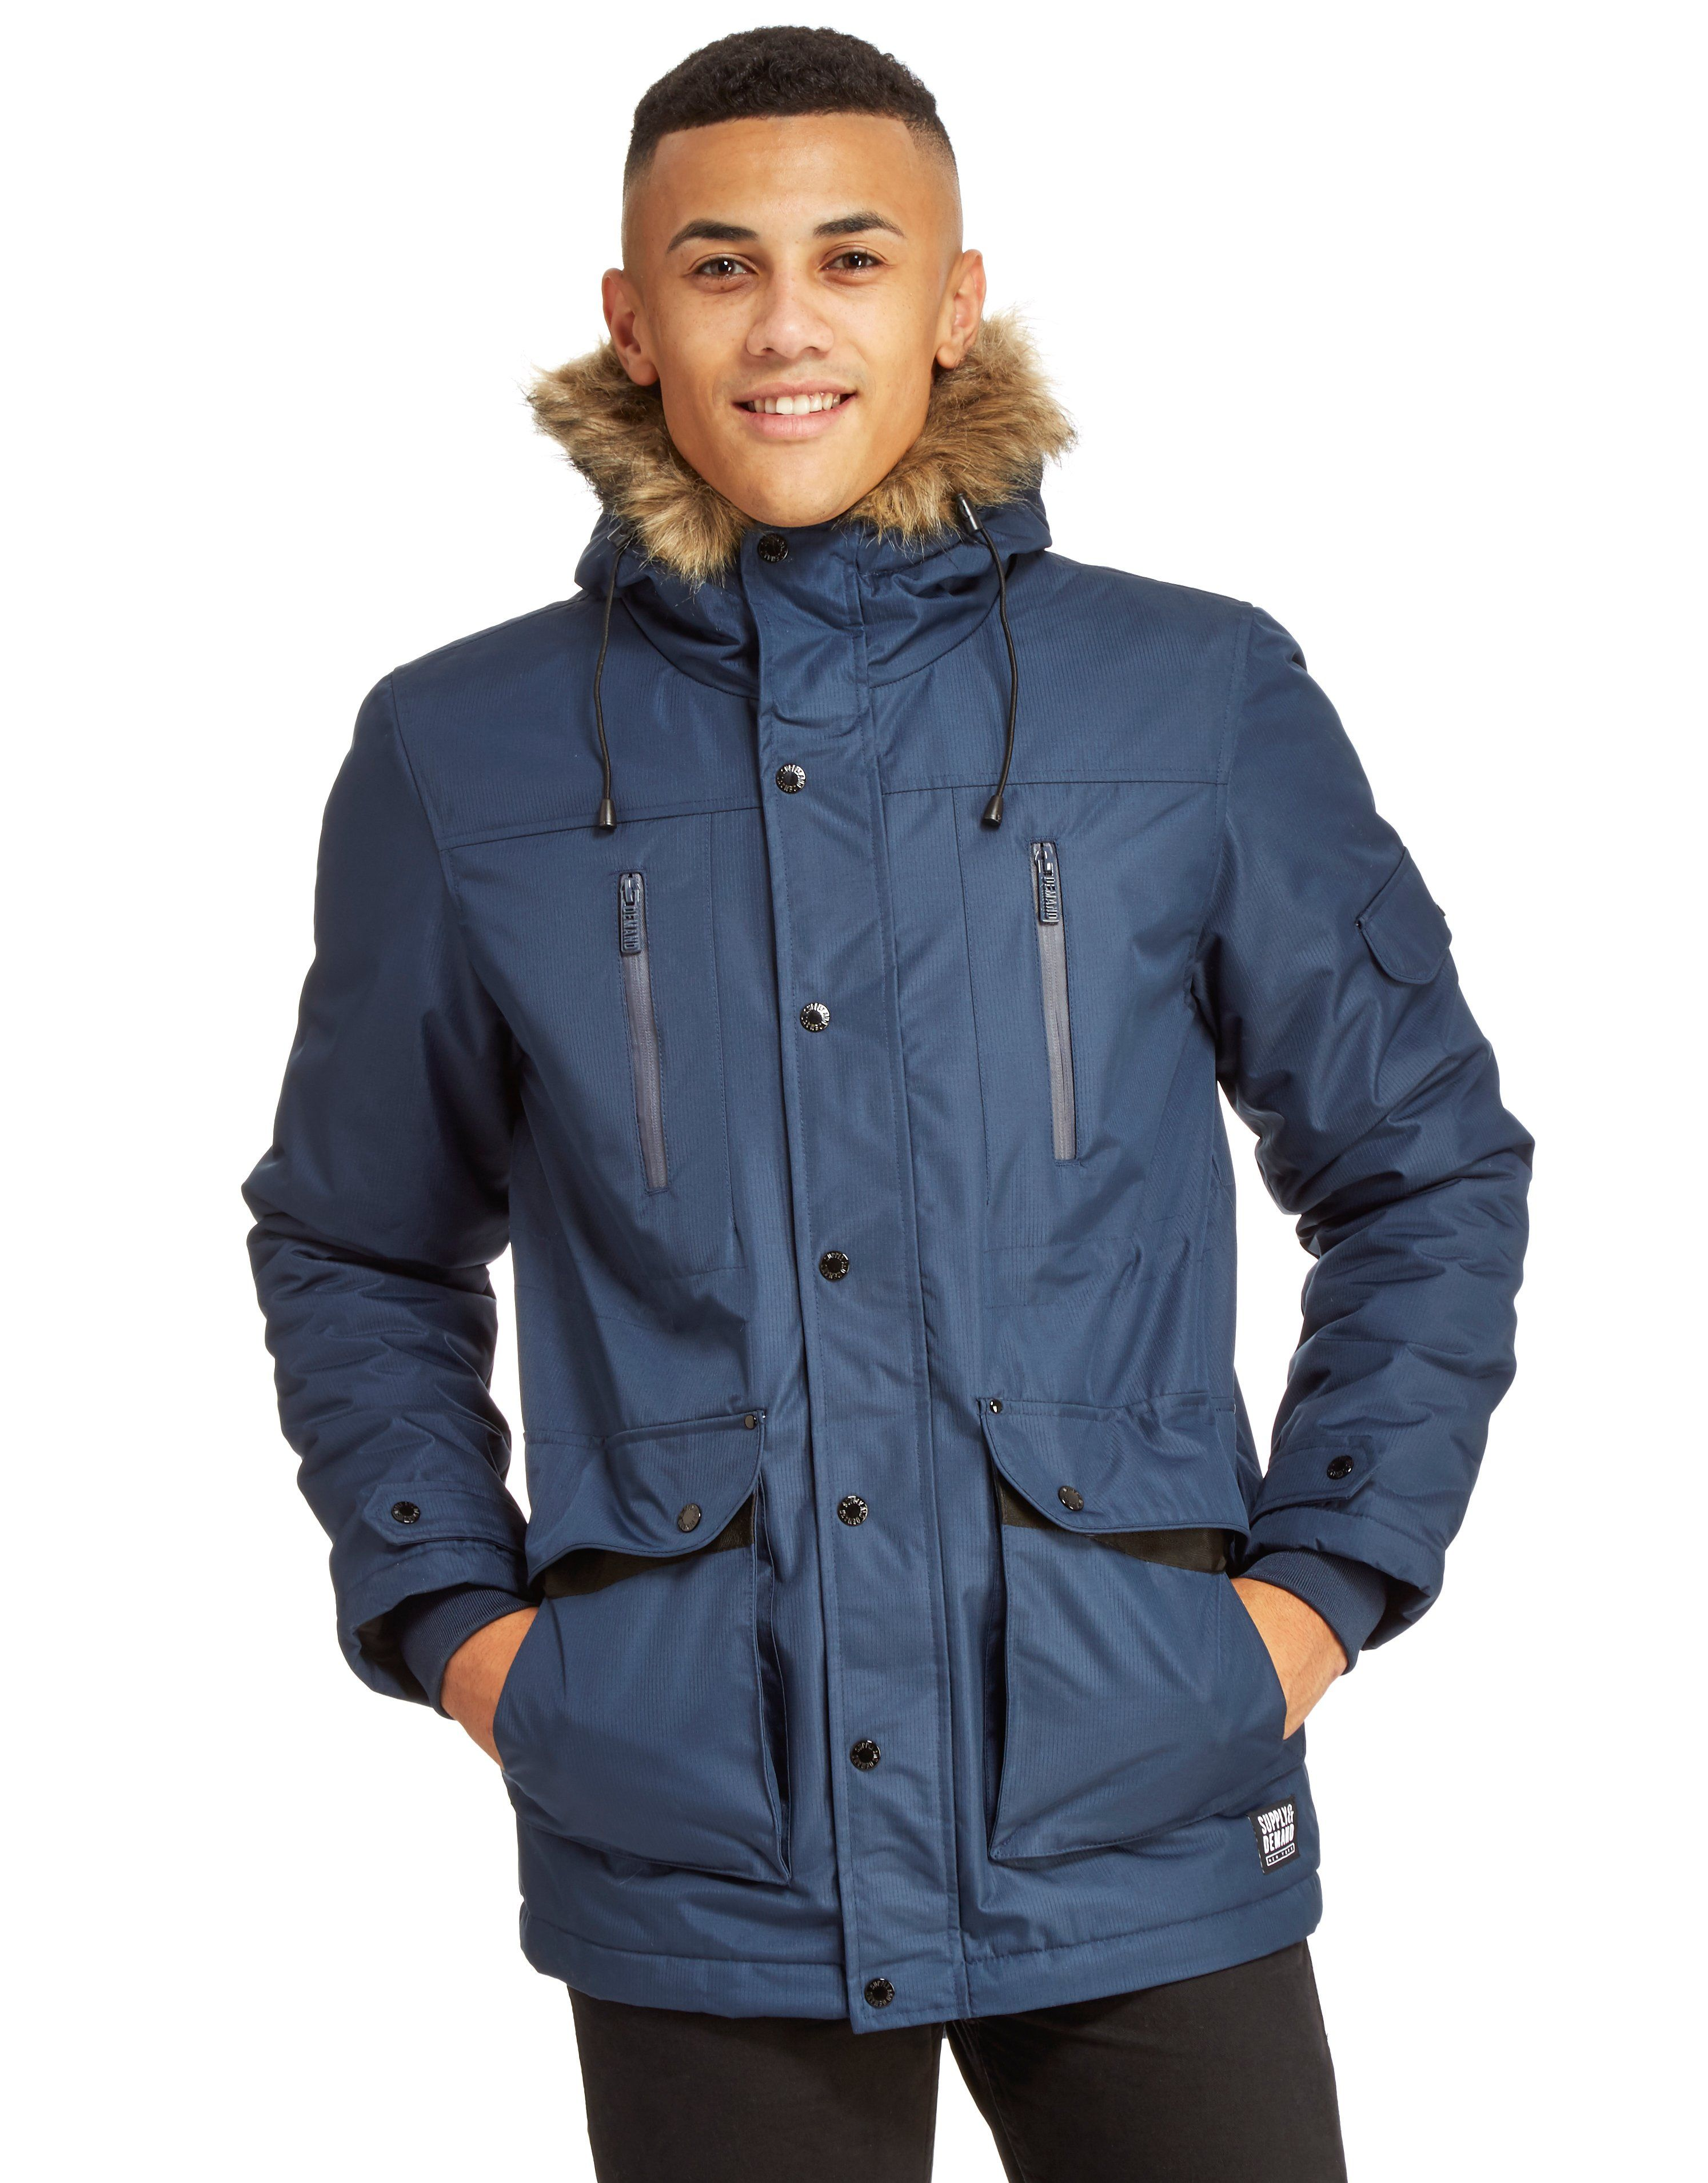 6ba877658177b 50%OFF Supply & Demand Parka Jacket | JD Sports - ramseyequipment.com